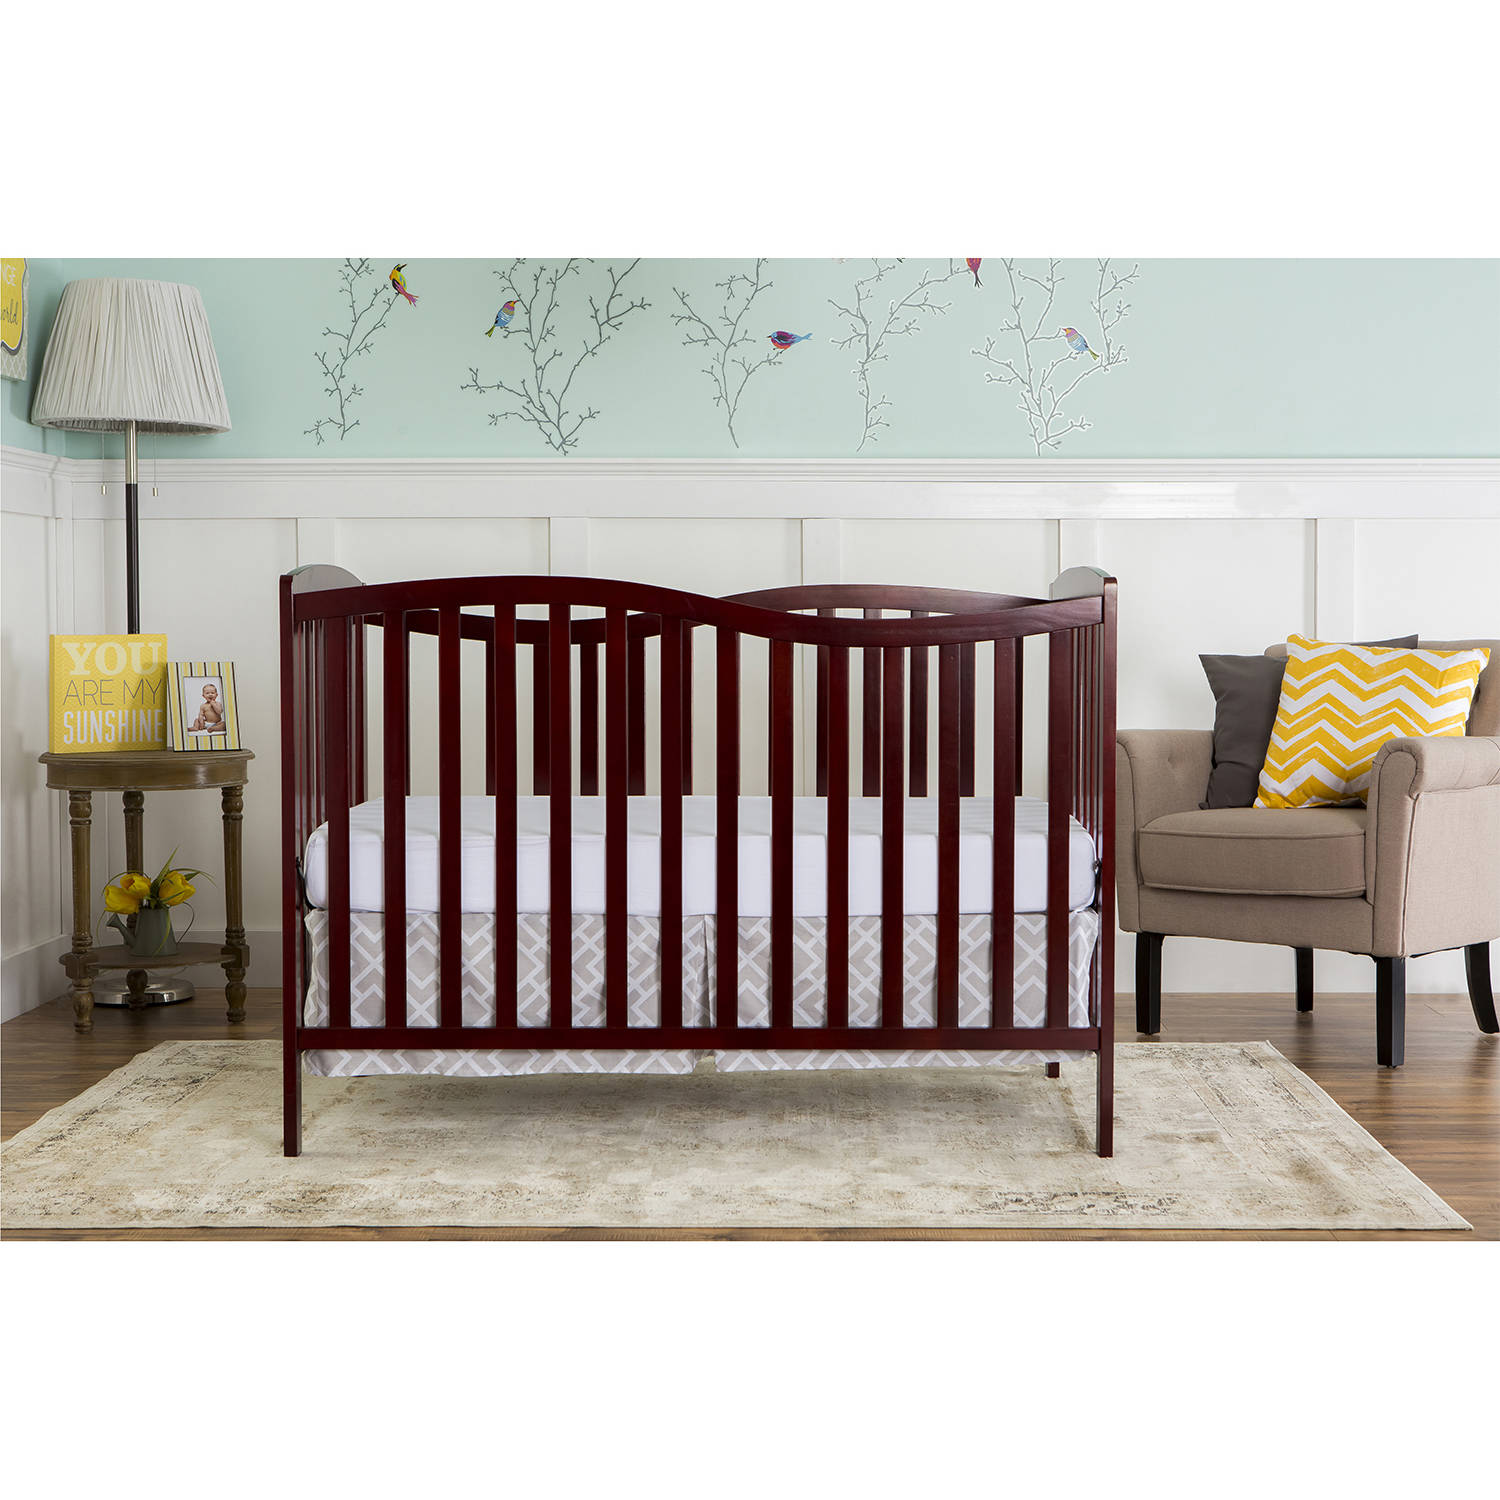 Dream On Me Chelsea 5-in-1 Convertible Crib, Choose Your Finish